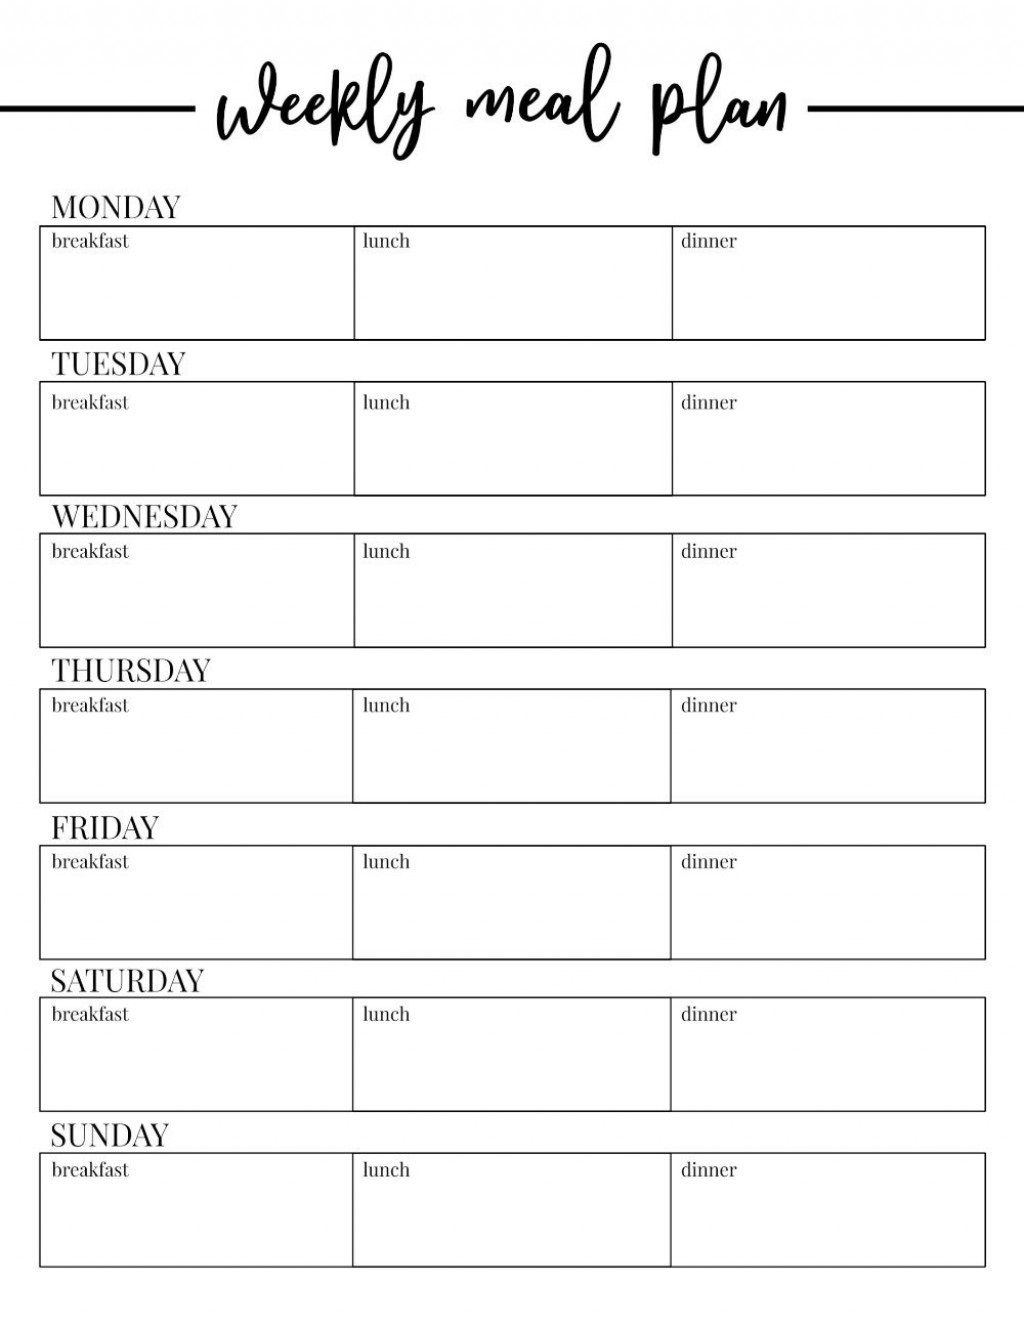 005 Unusual Excel Weekly Meal Planner Template Image  With Grocery List DownloadableFull